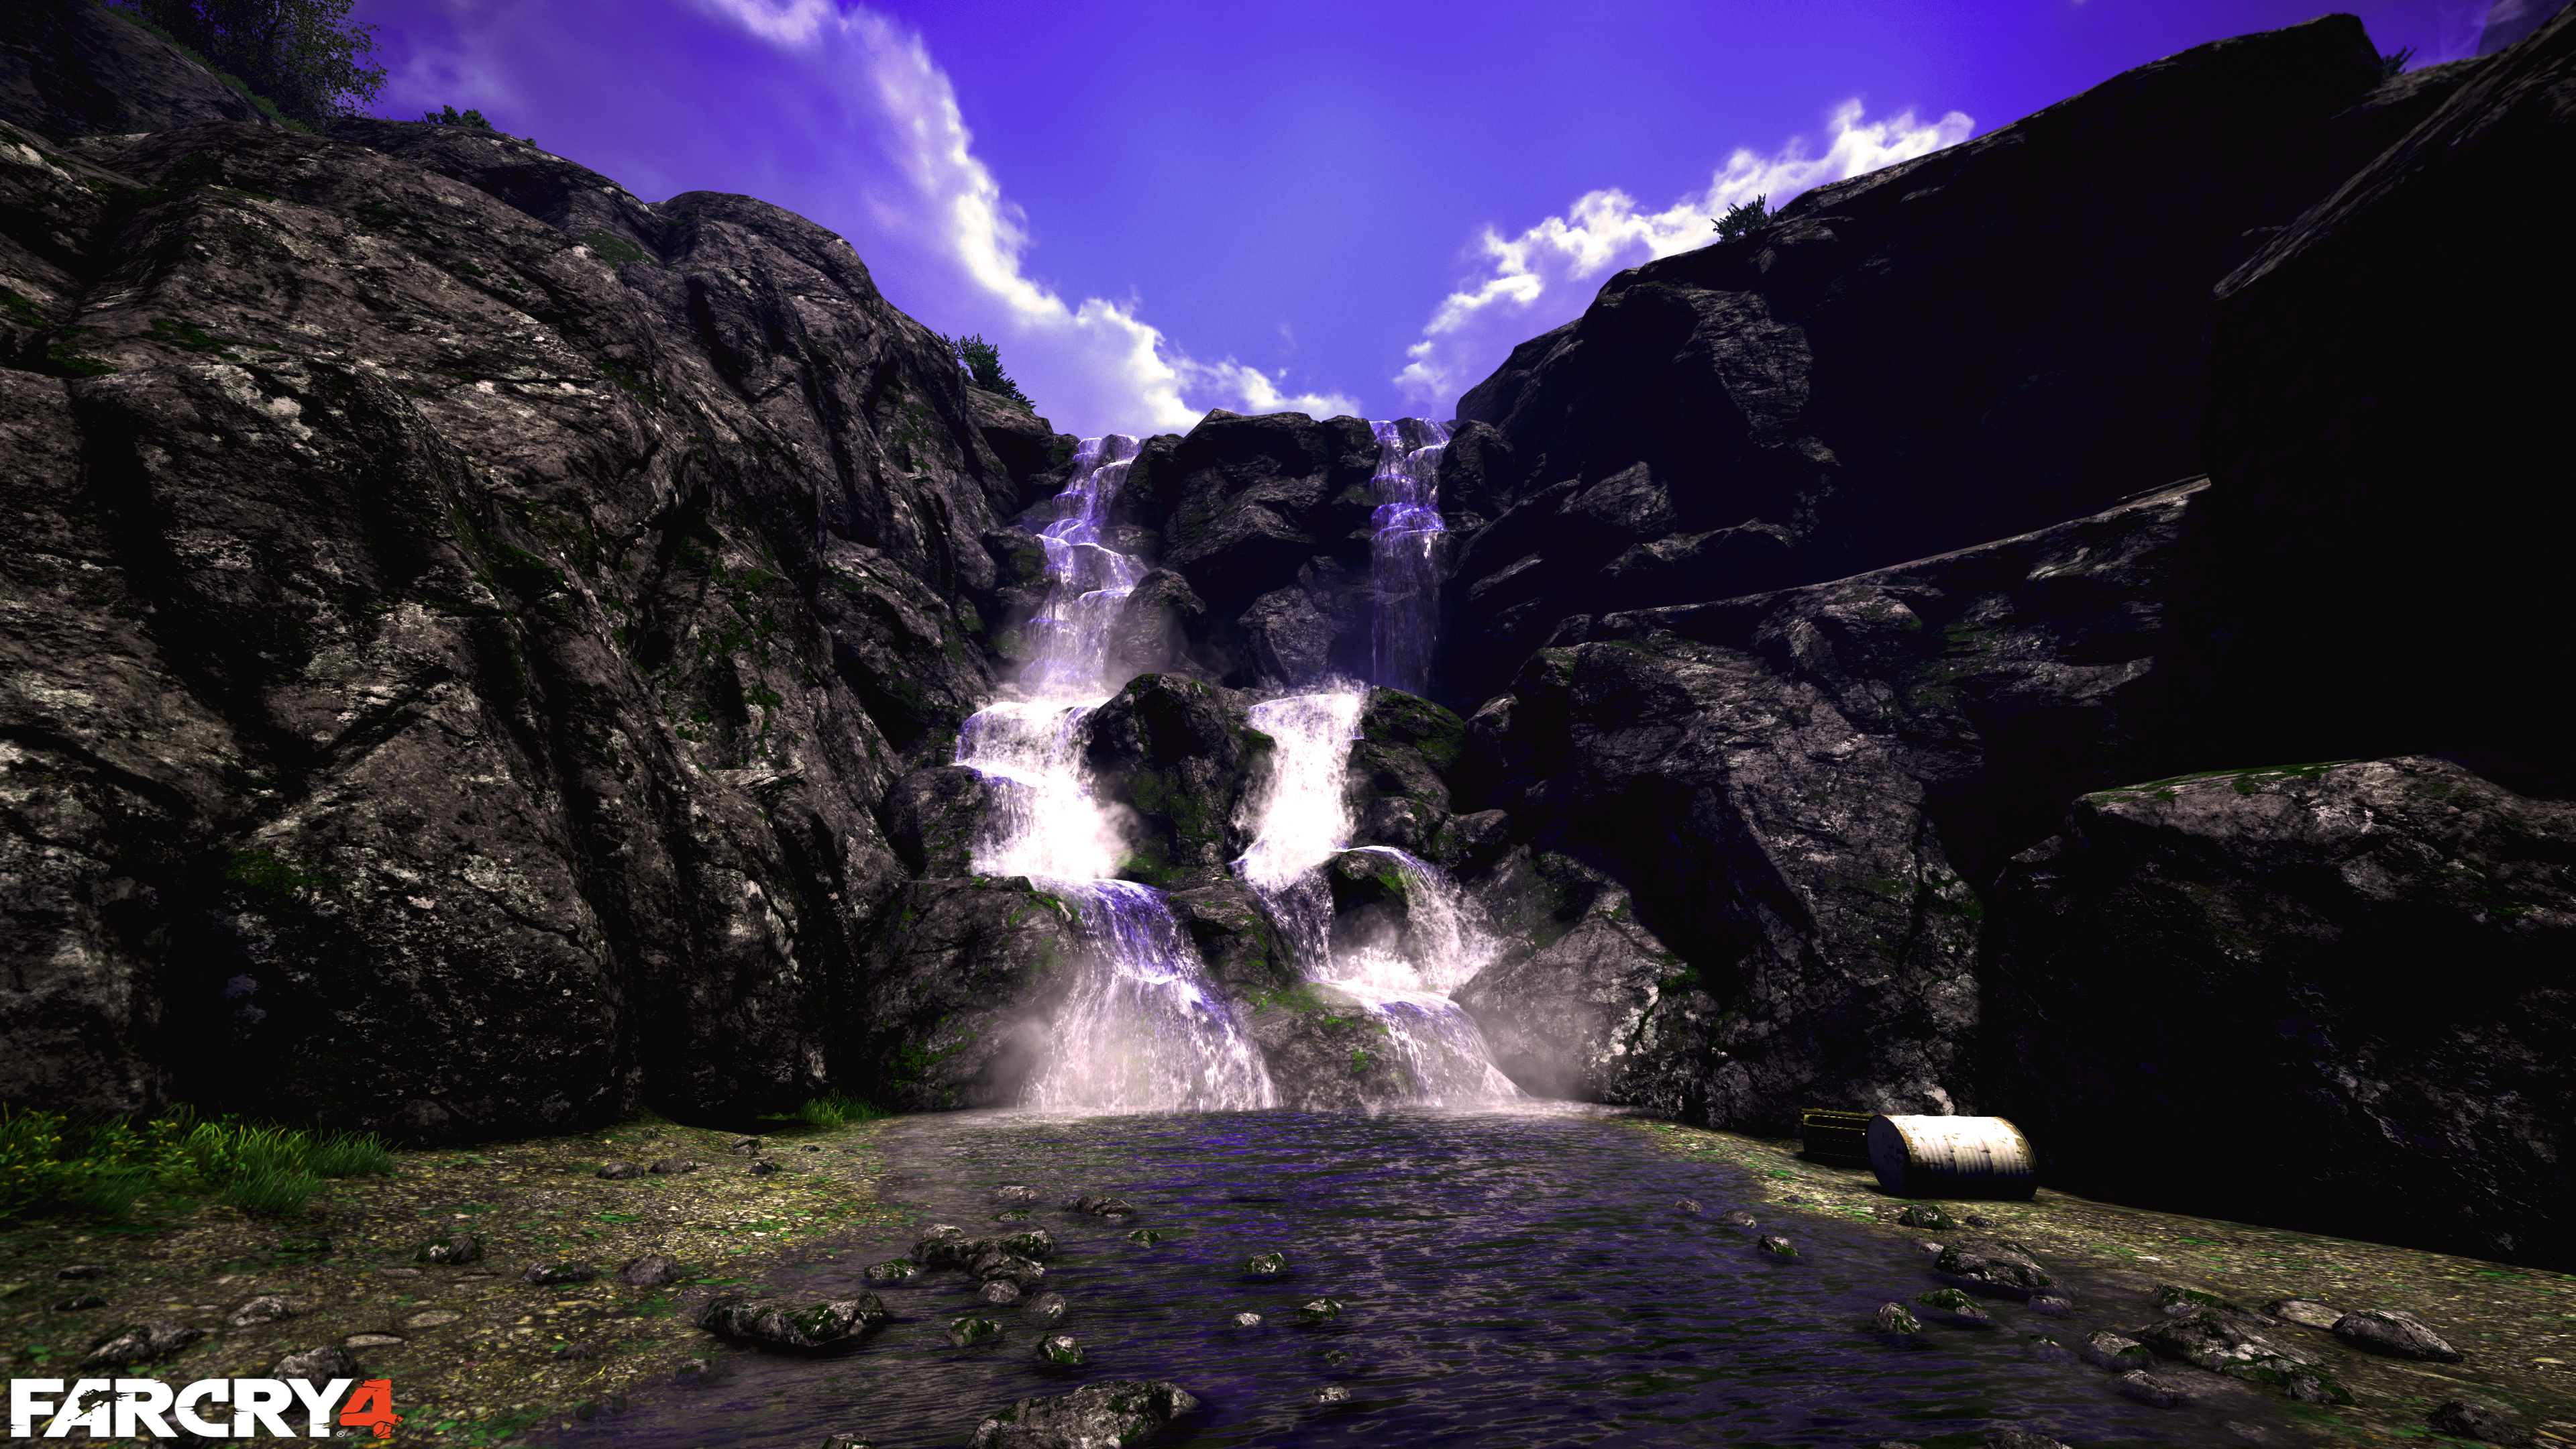 Far Cry 4 Waterfall 4k! 4k Ultra HD Papel De Parede And